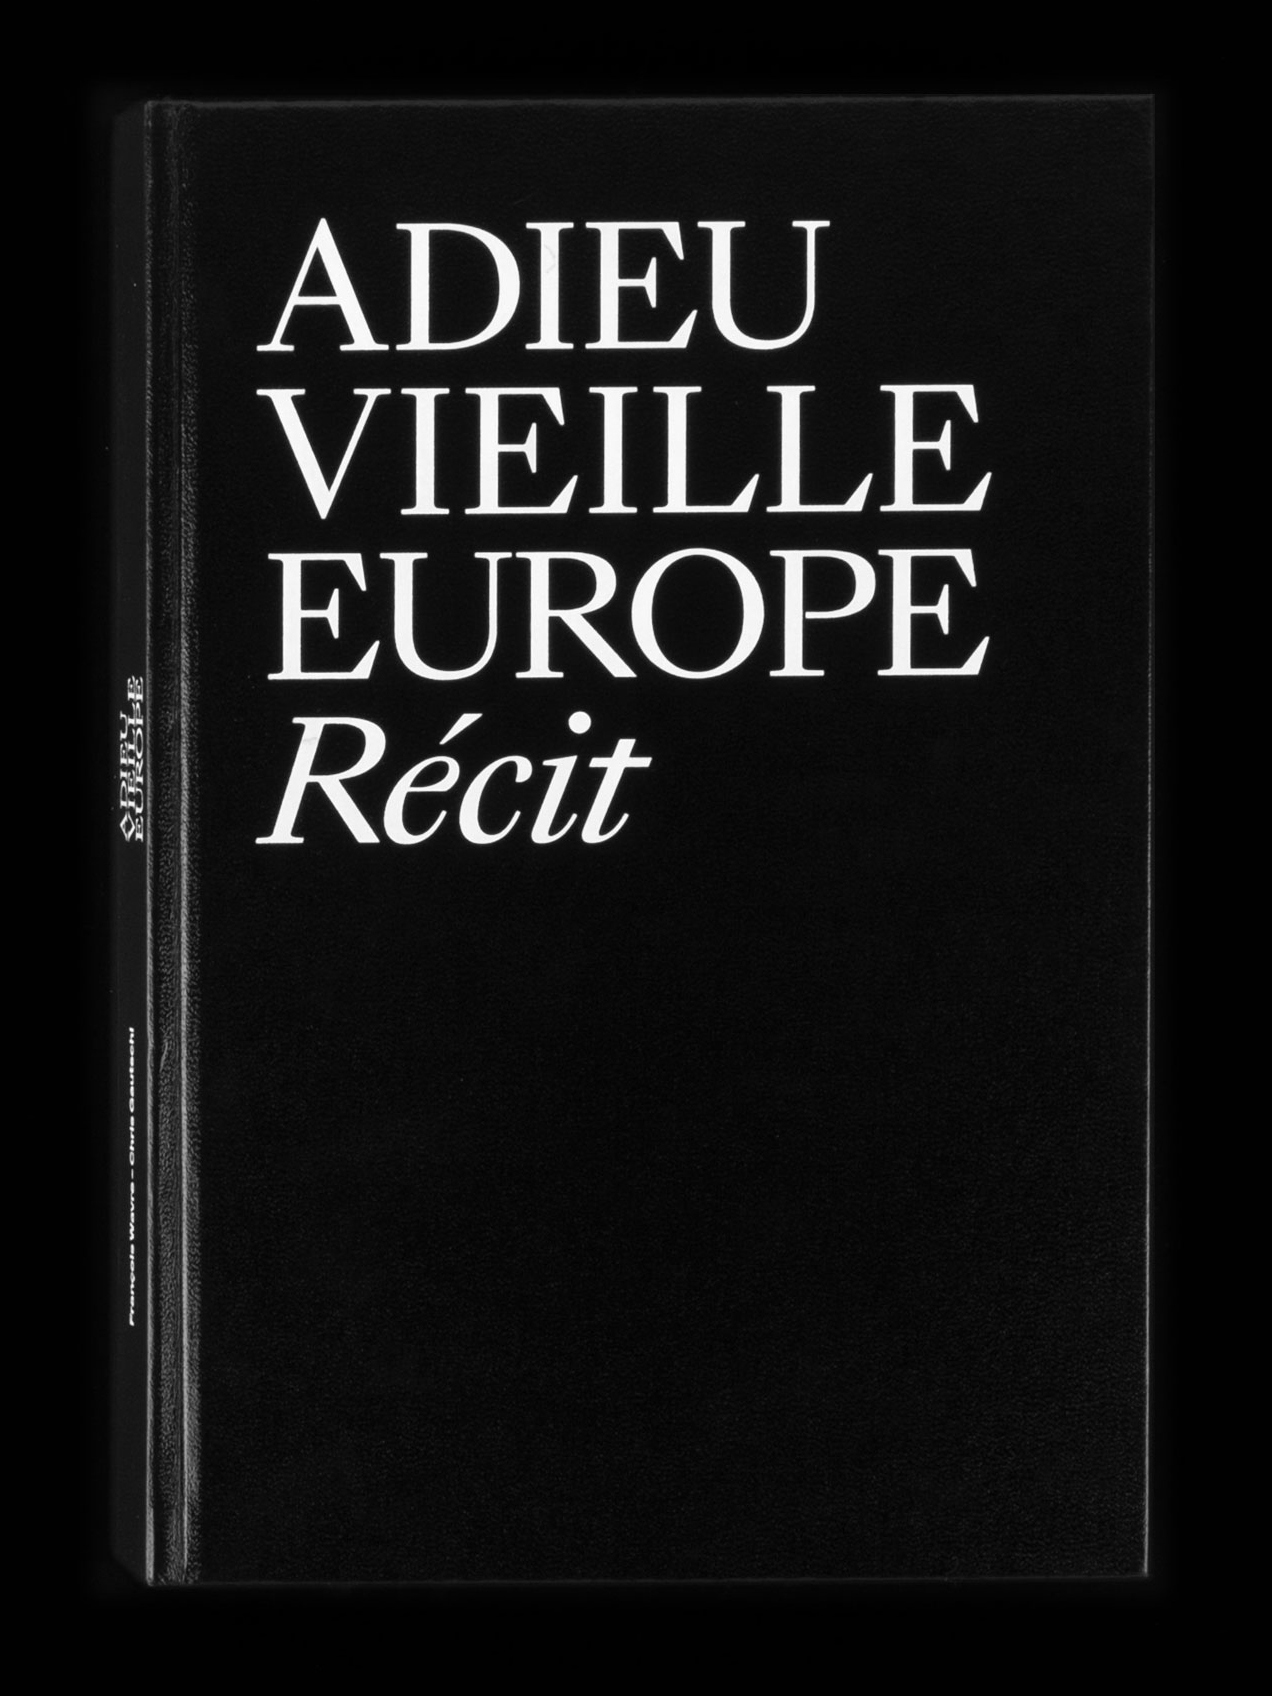 AVE_book_1